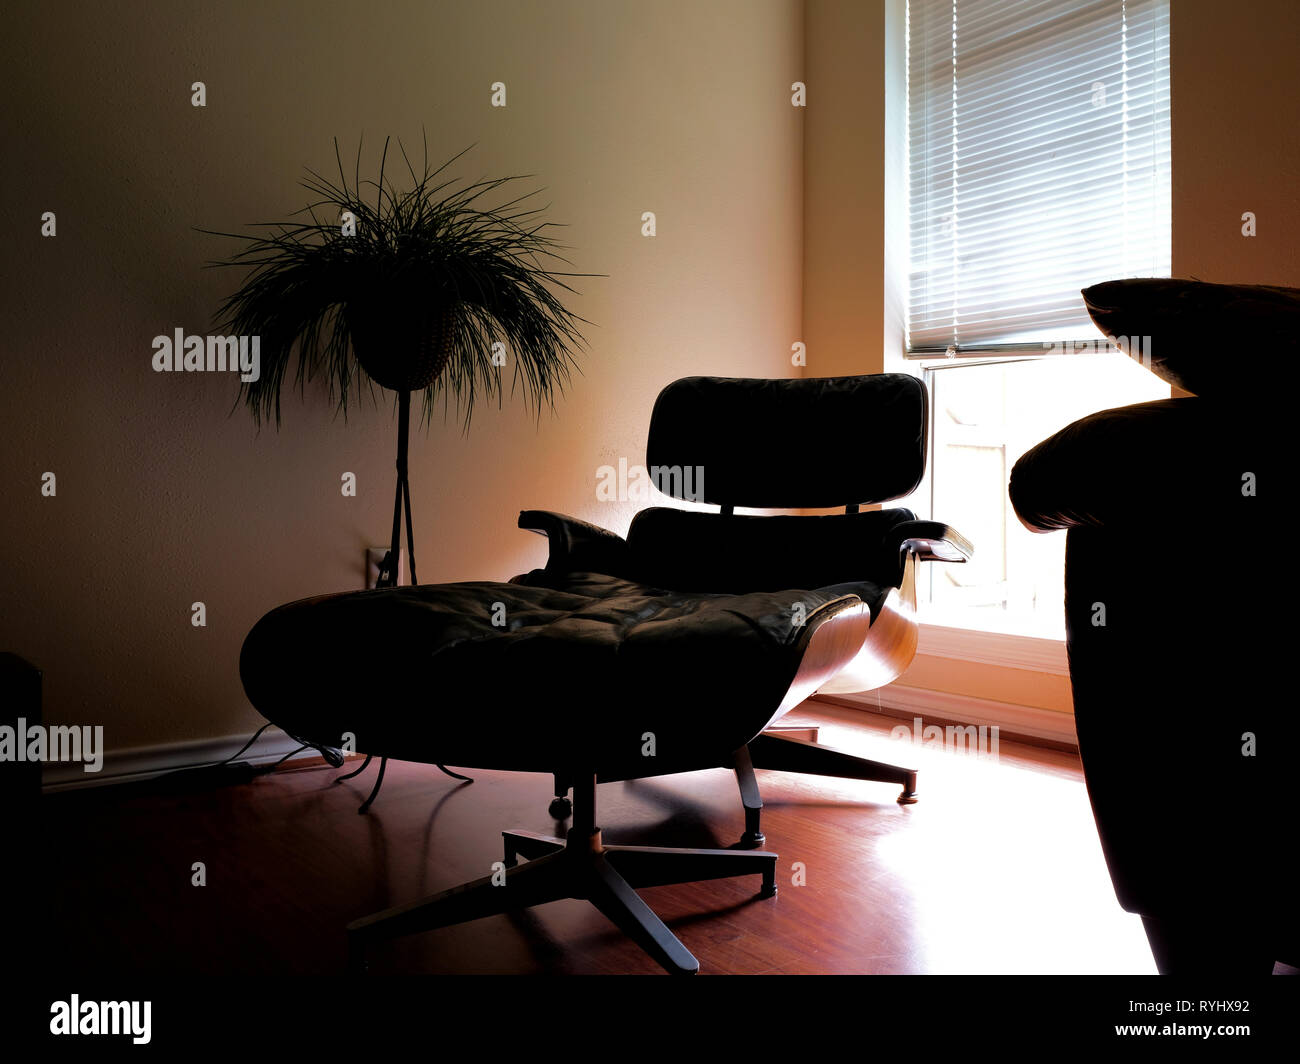 Charles and Ray Eames designer black lounge chair with ottoman in a living room setting by a window on a wooden floor; subdued tones and dark setting. - Stock Image